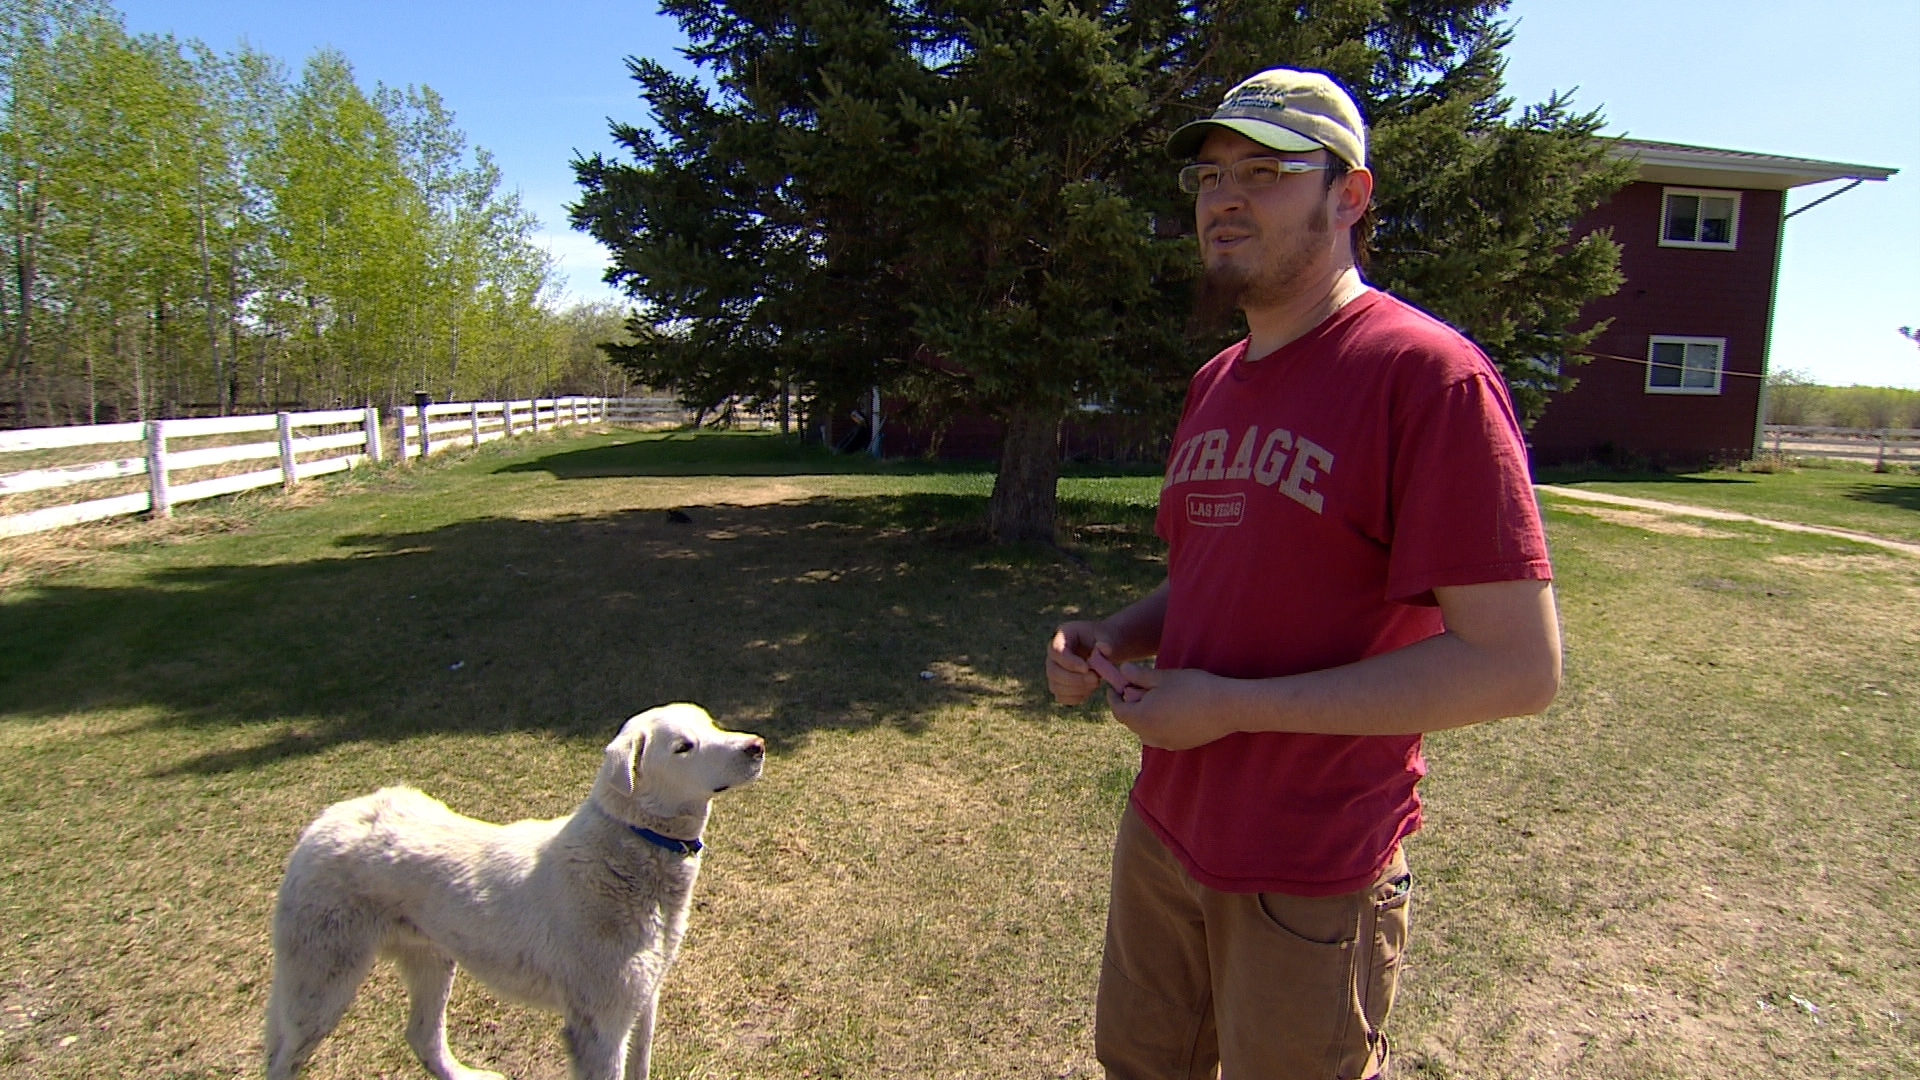 Jordan Bull often leaves his dog, Ryley, free to roam the Maskwacis community. (Sam Martin/CBC)